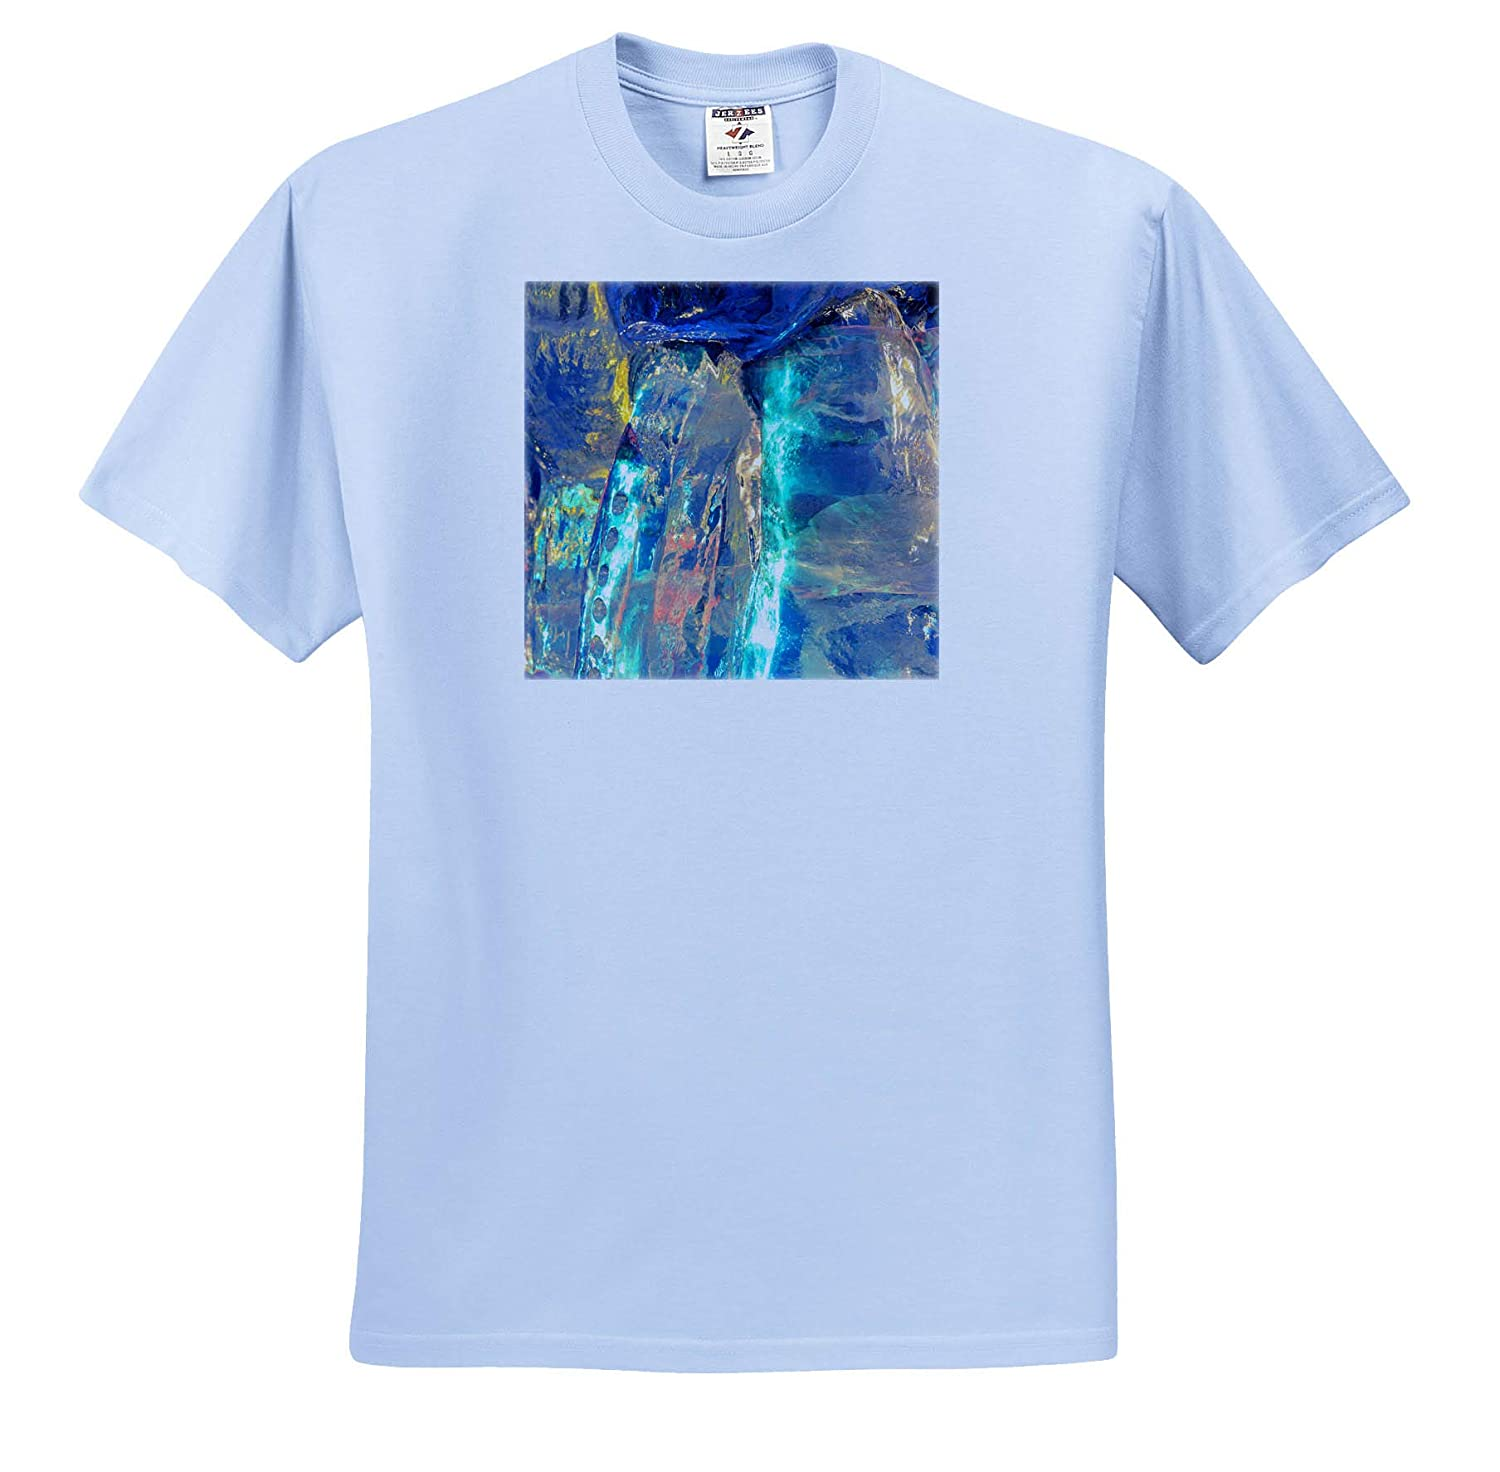 3dRose Danita Delimont - Adult T-Shirt XL Colorful Patterns and Textures of ice Blocks ts/_314529 Abstracts